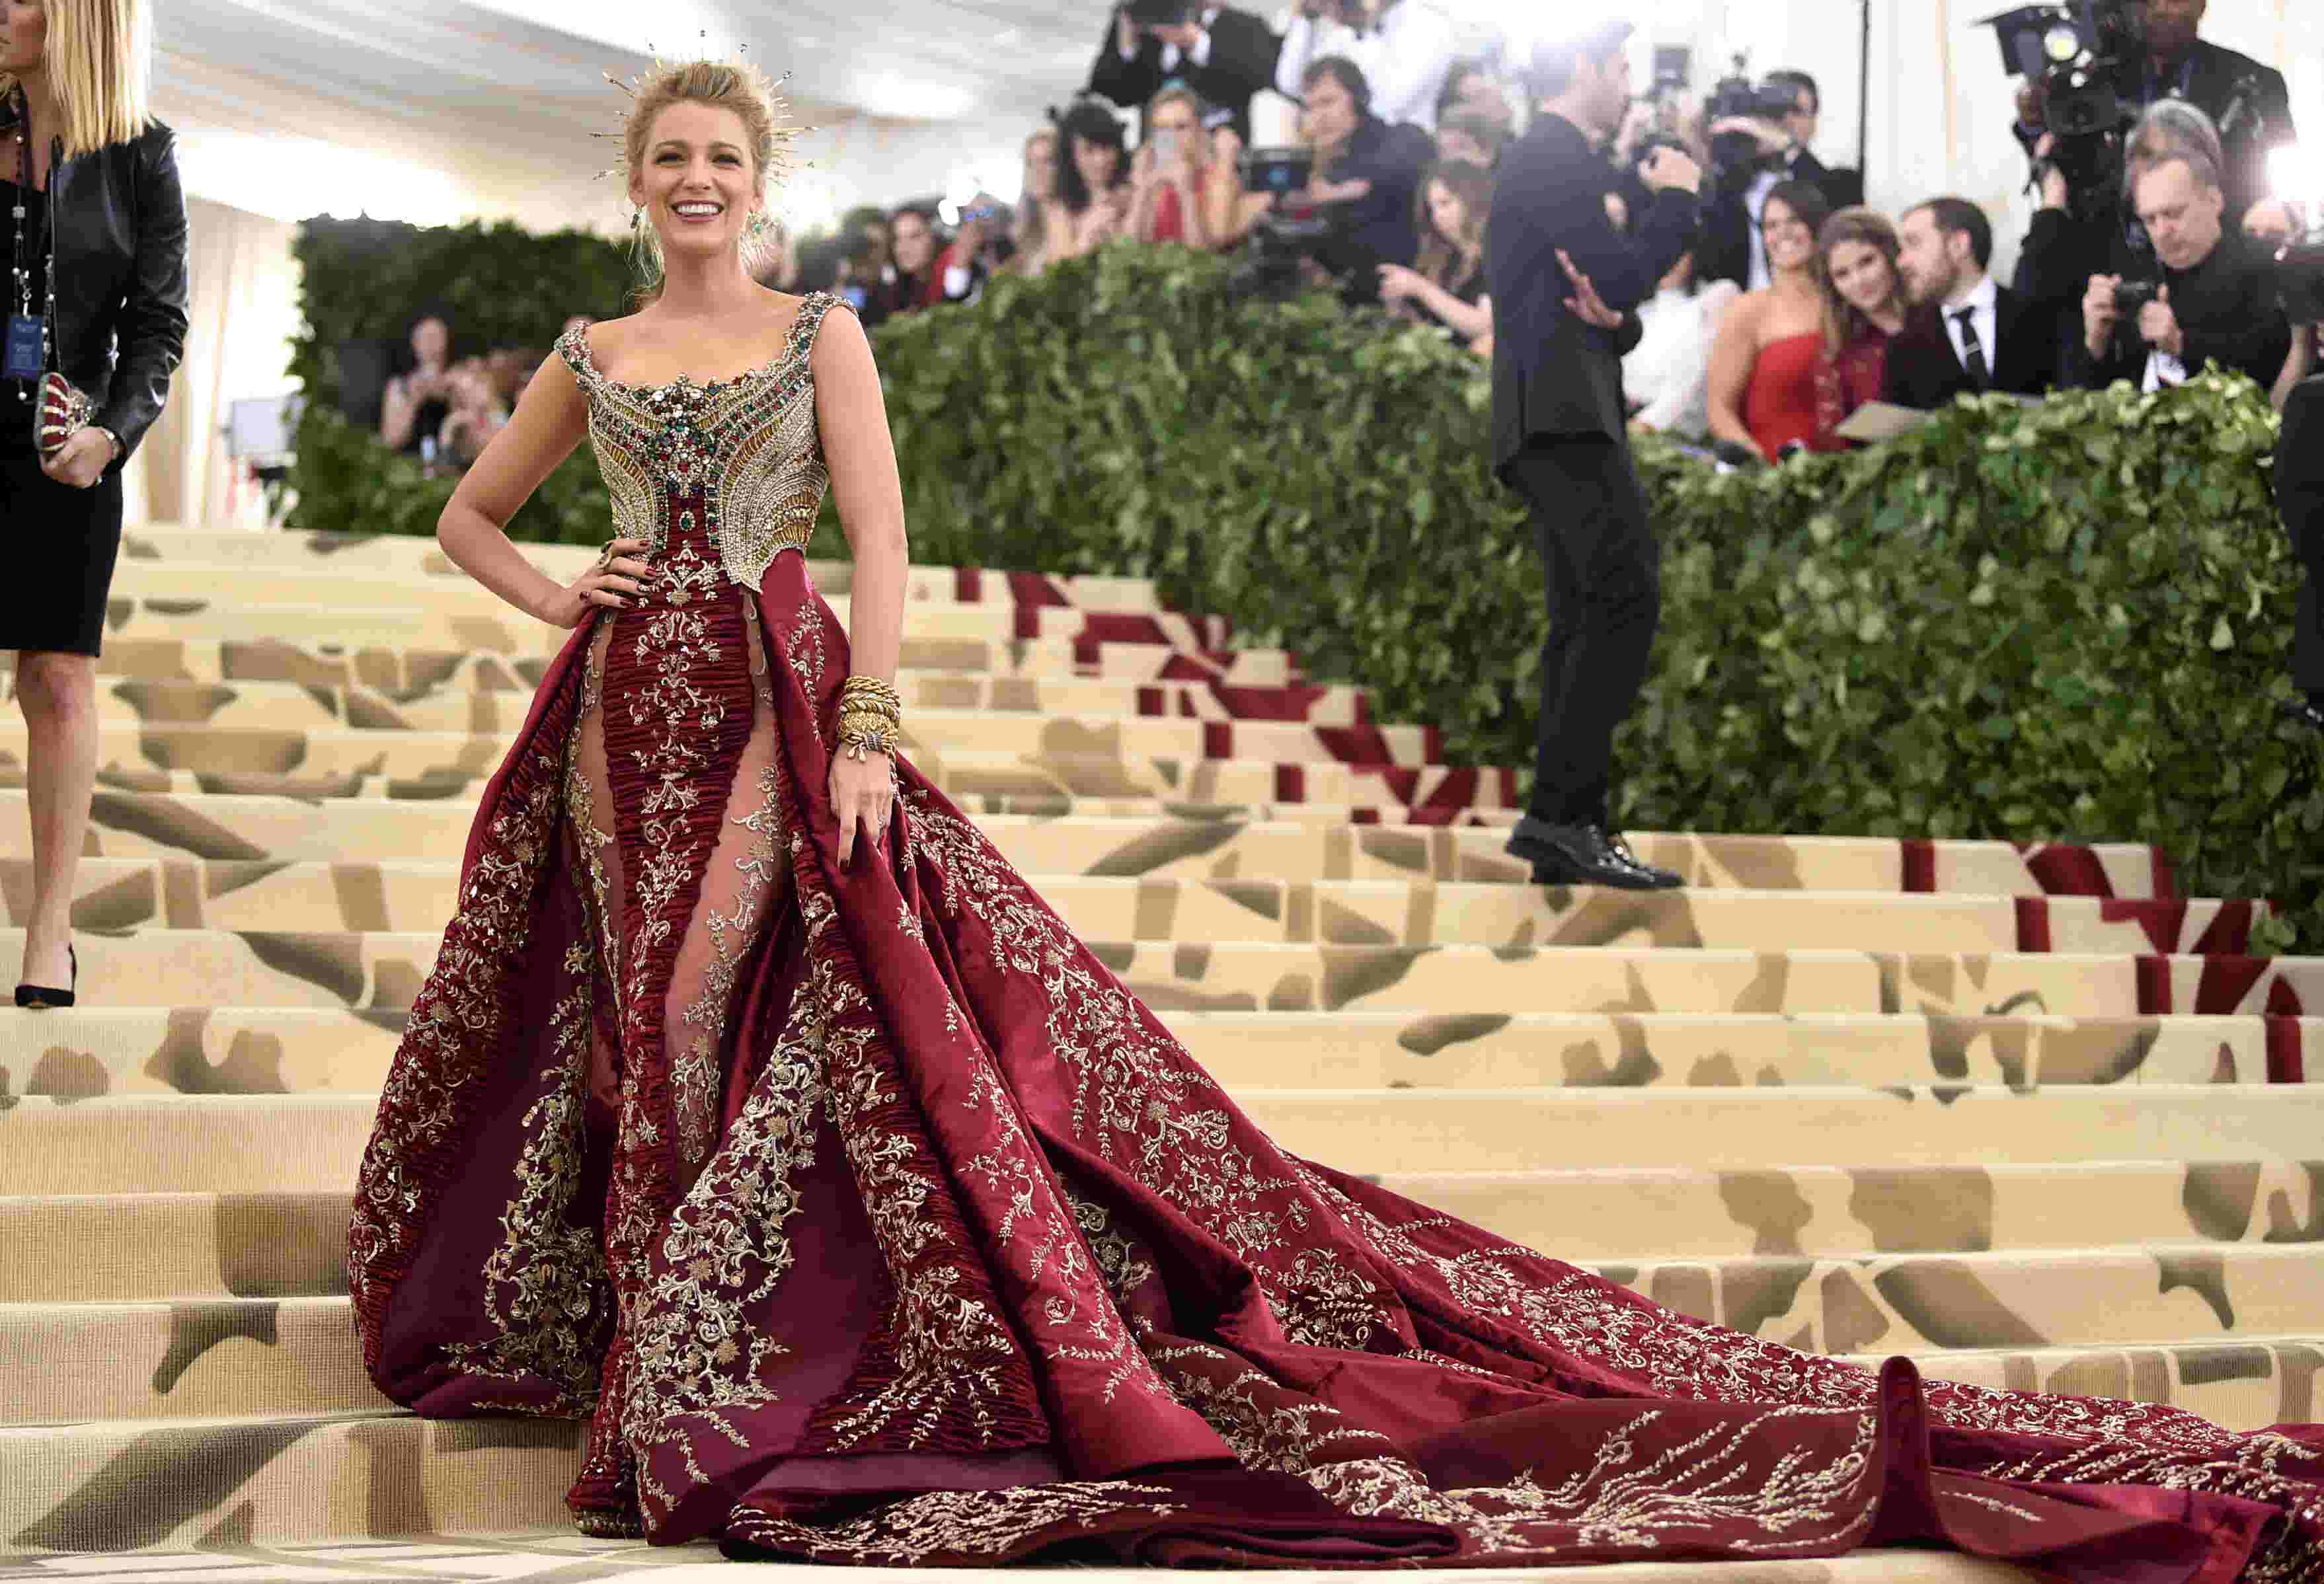 Met gala 2018 best dressed looks from rihanna amal clooney and more play altavistaventures Images